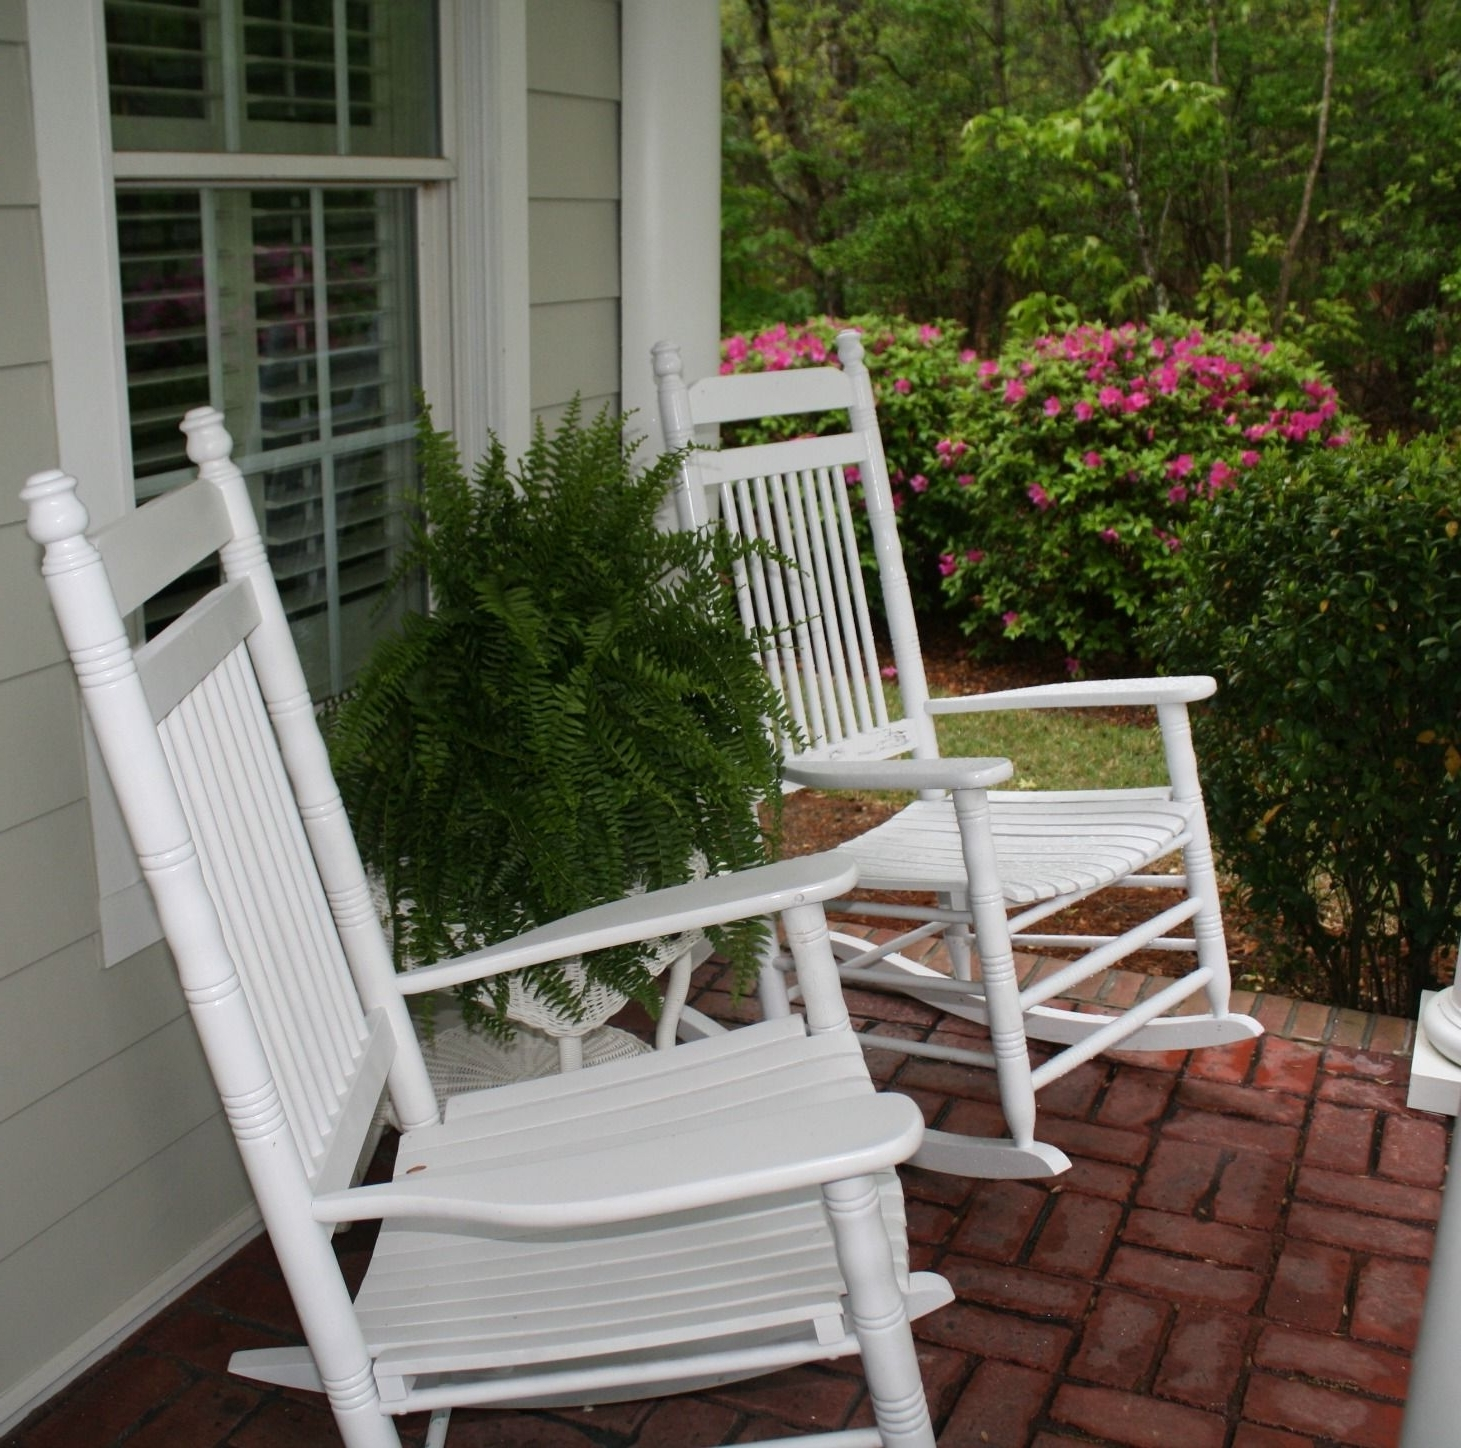 Cracker Barrel White Rocking Chairs Boston Ferns Front Porch (View 2 of 20)